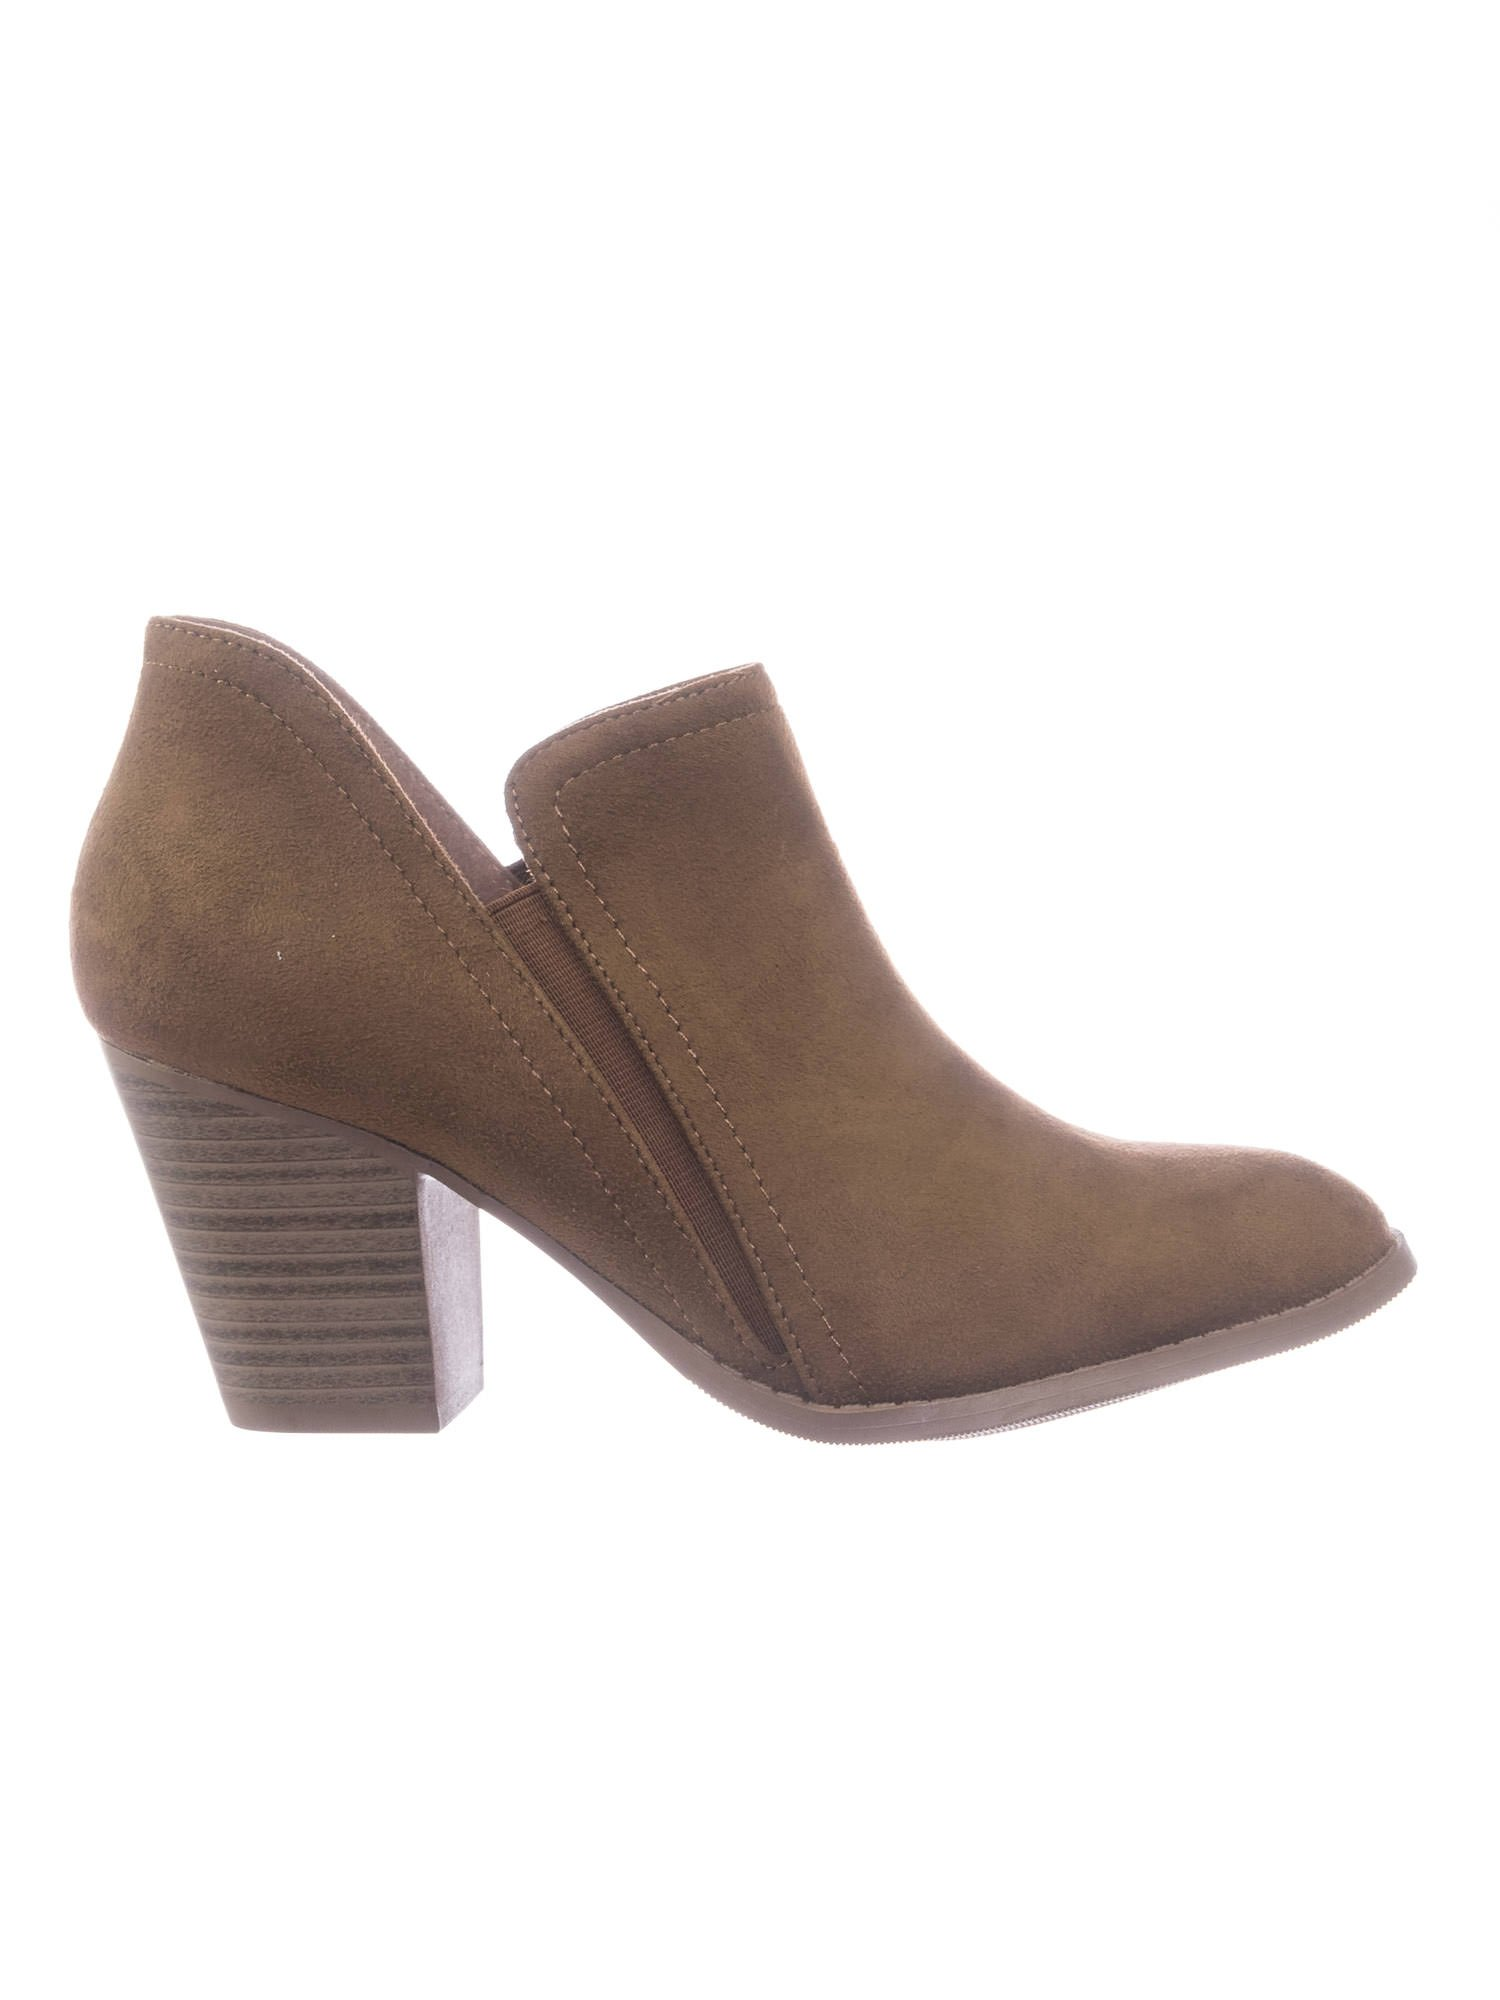 City Classified Women Chelsea High Stack Heel Ankle Bootie w Elastic Side Slit by City Classified (Image #2)